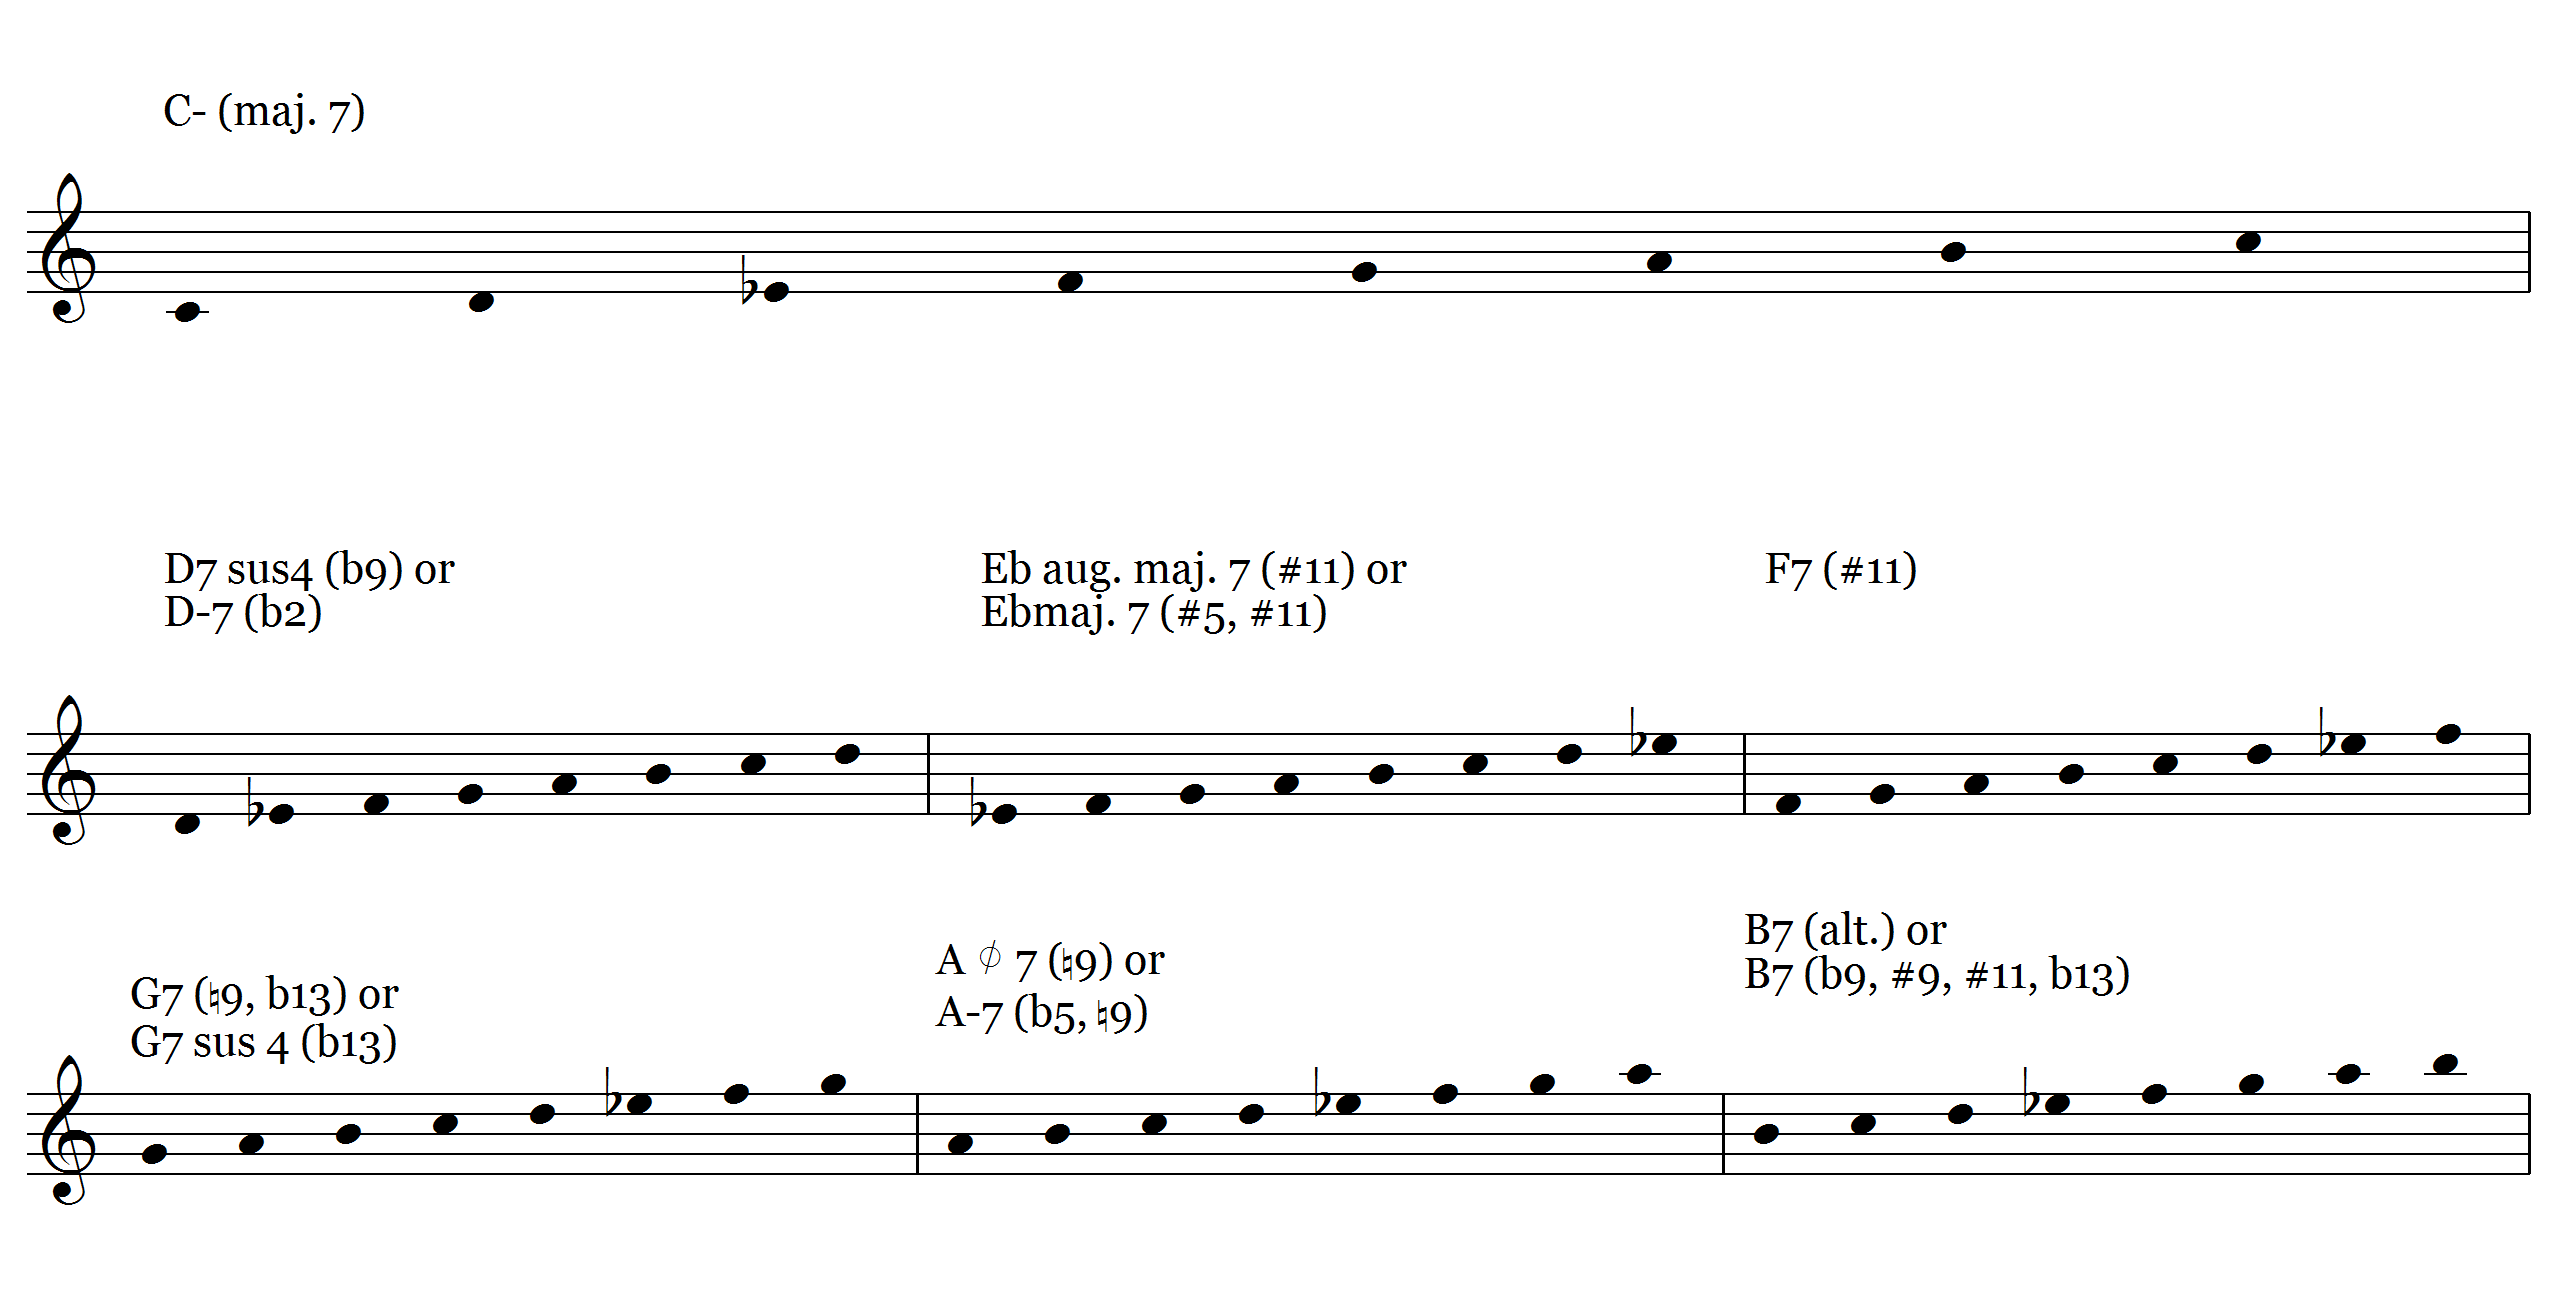 Ljs 86 7 chords you can play the melodic minor scale over learn using the melodic minor over 7 different chords hexwebz Choice Image